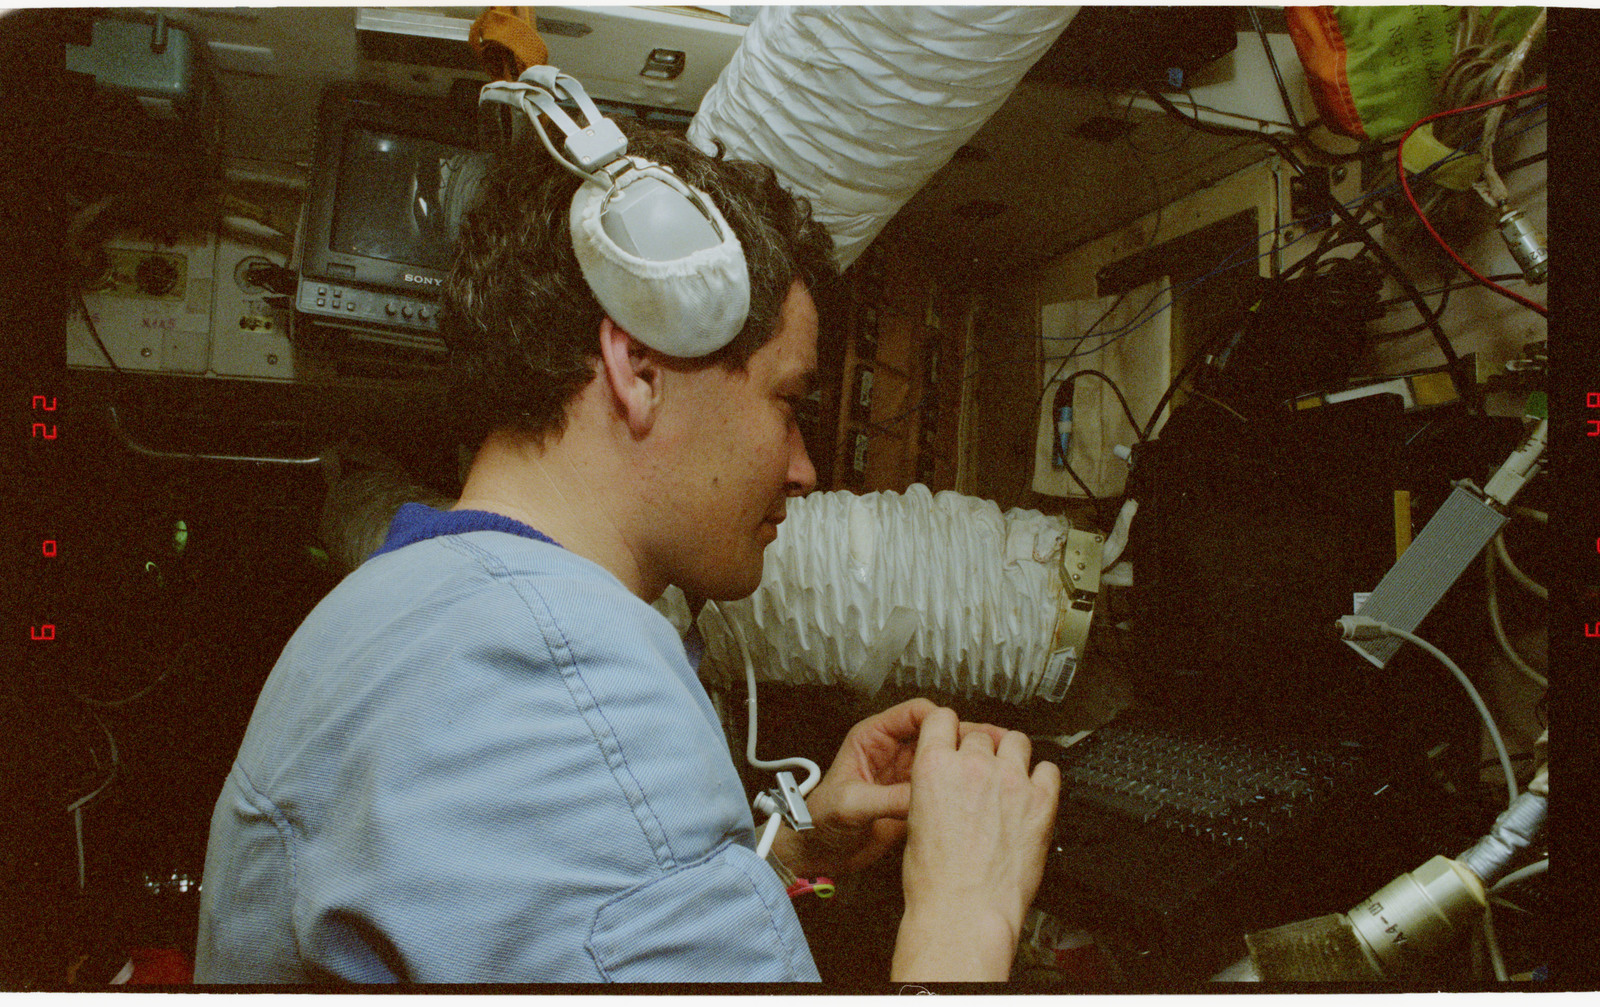 STS079-336-030 - STS-079 - STS-79 and Mir 22 crew activities in Mir space station